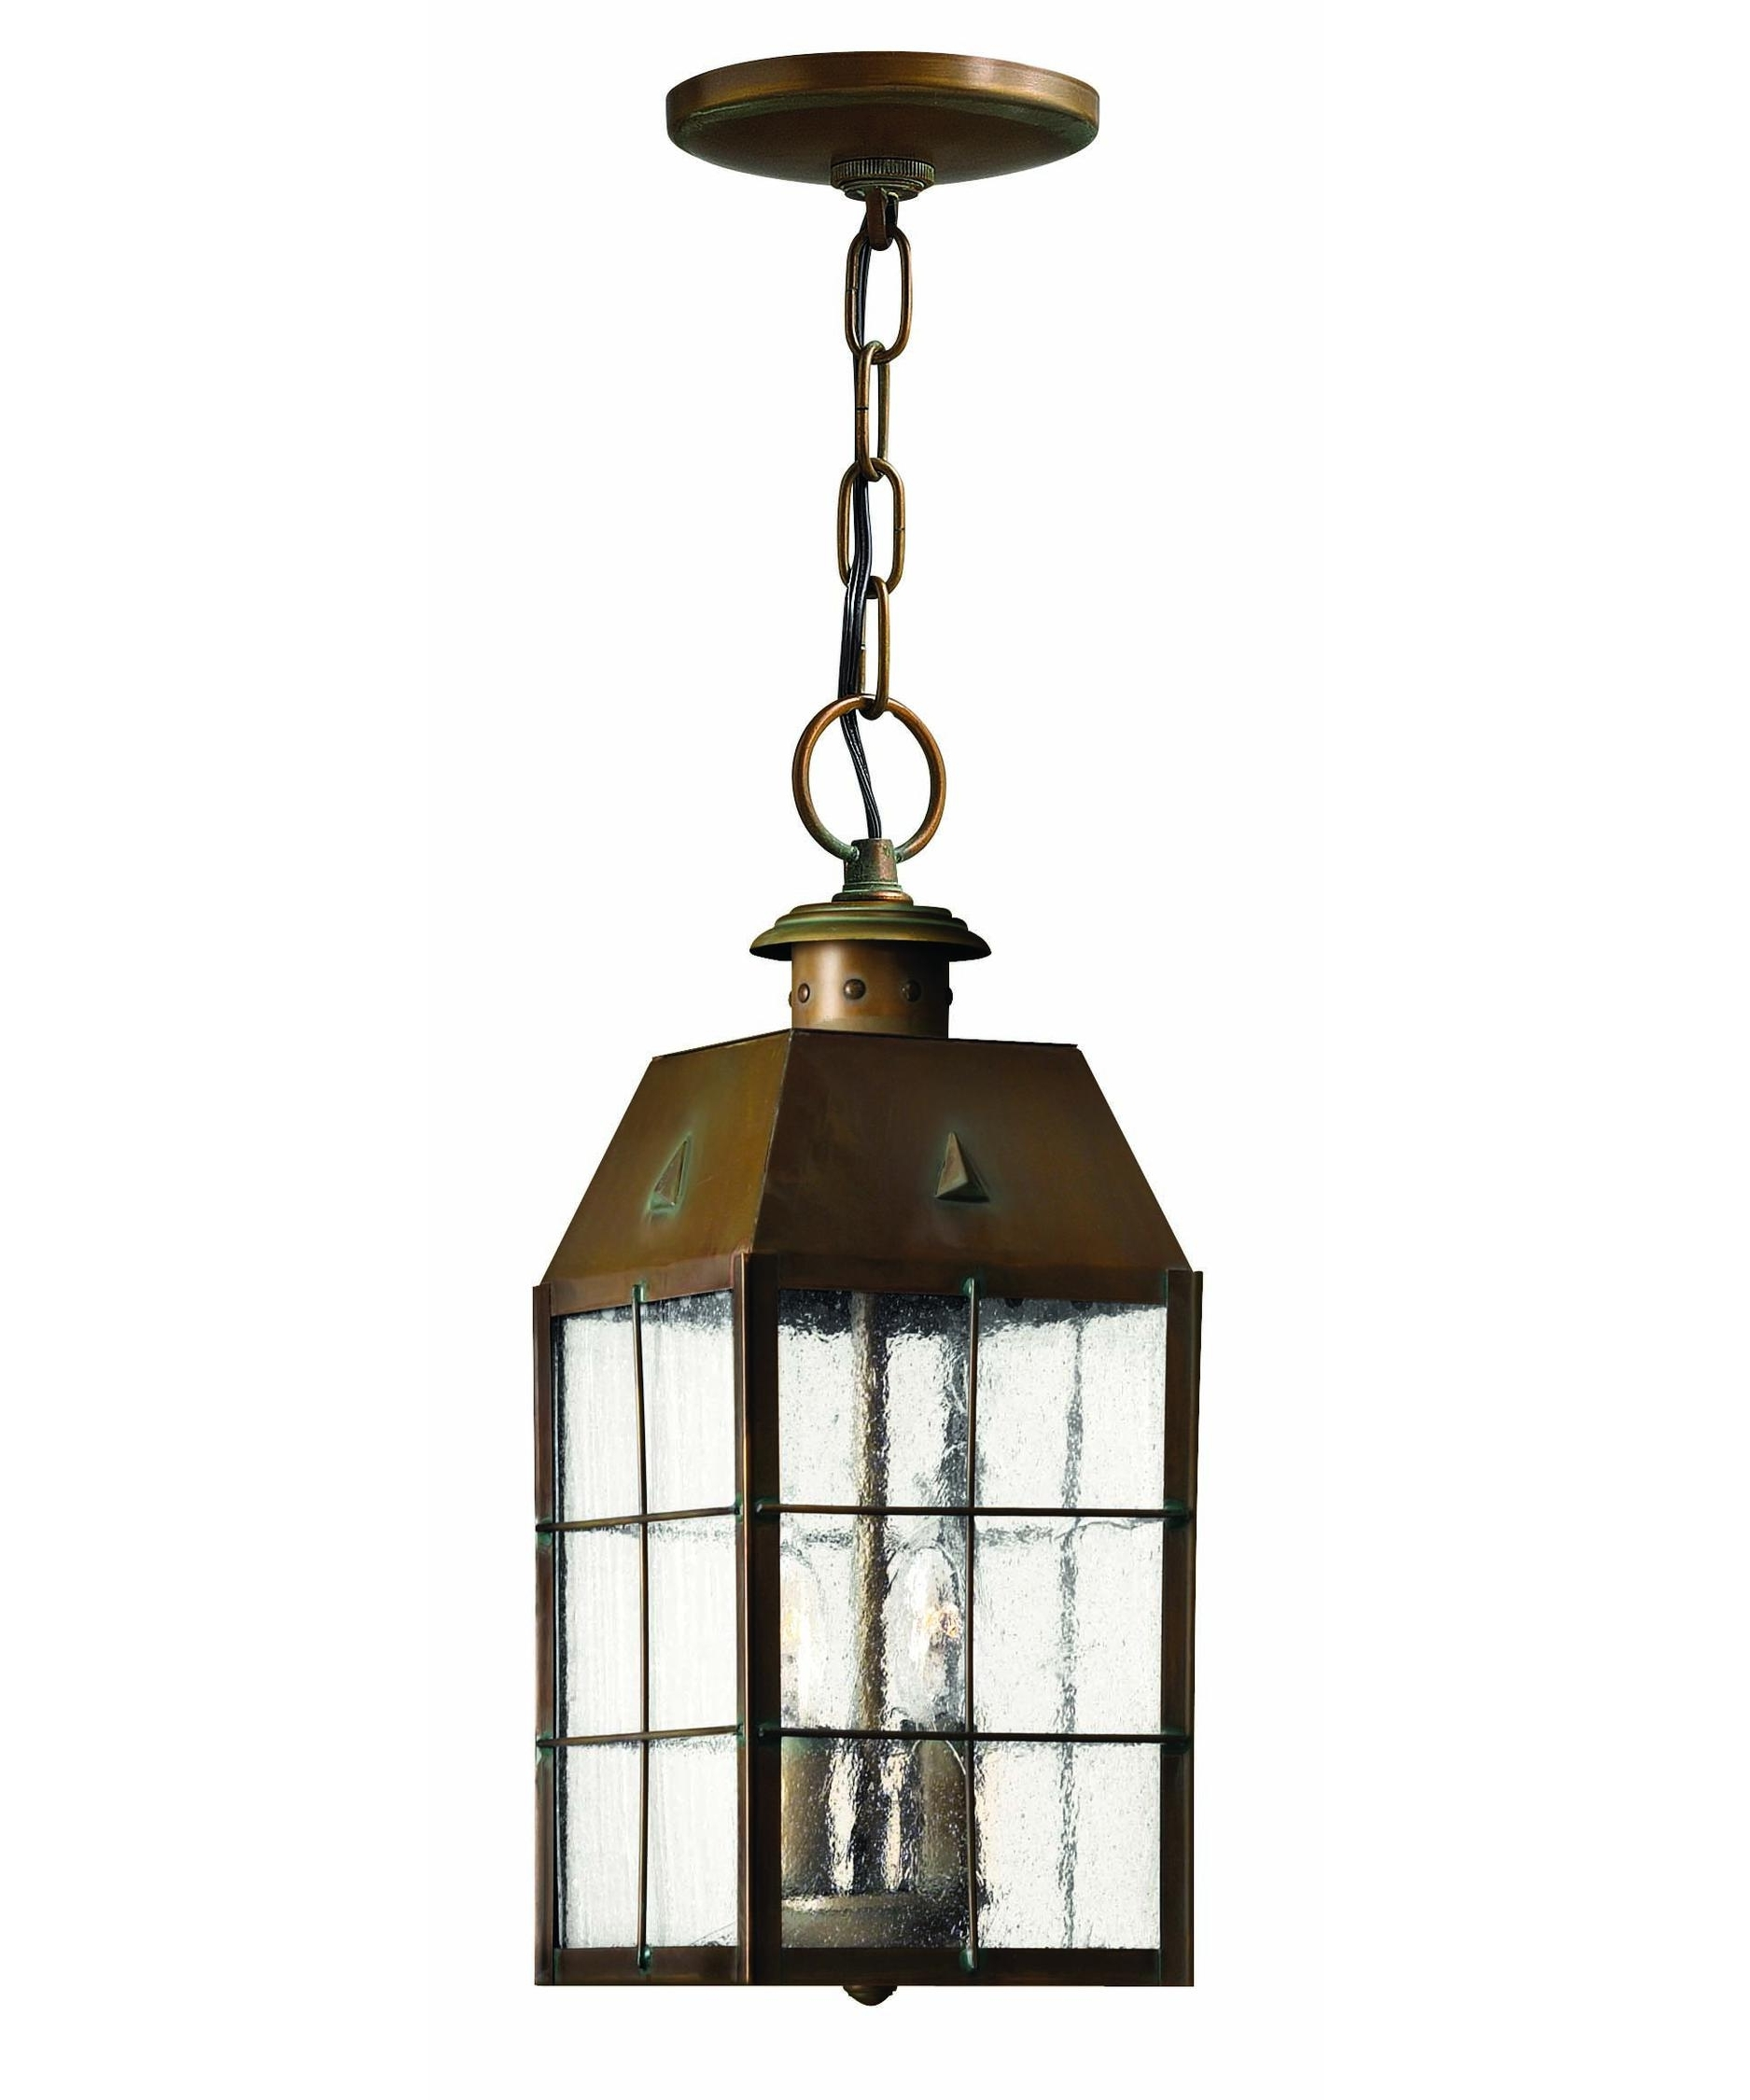 Hanging Porch Light Oil Rubbed Bronze Outdoor Lights Houzz 12 For Newest Houzz Outdoor Hanging Lights (View 4 of 20)